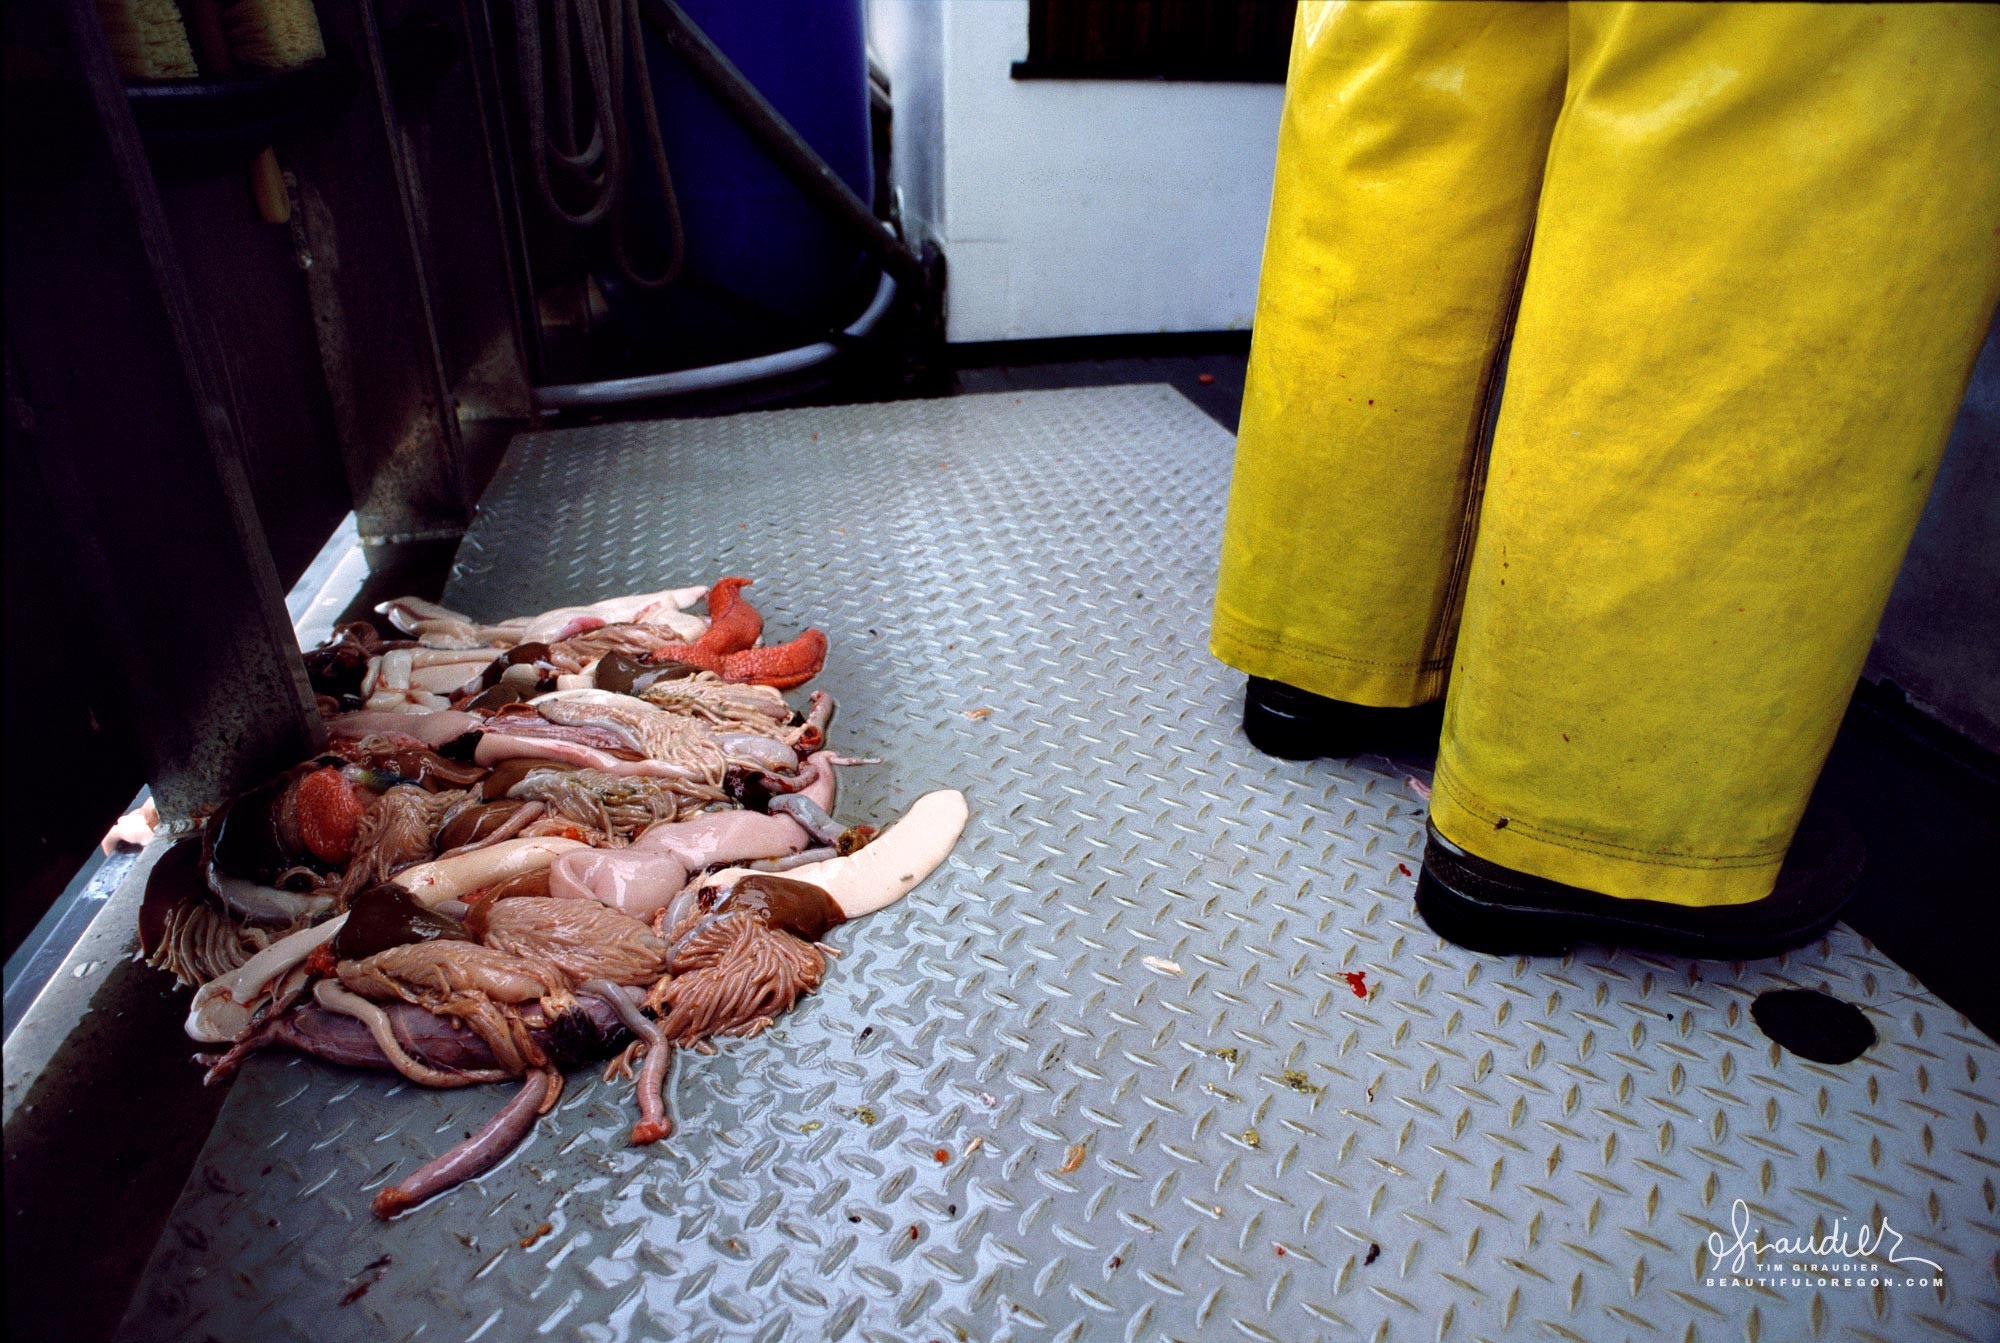 Cleaning fish and salmon guts, the daily life of crewman aboard an Alaska salmon troller.